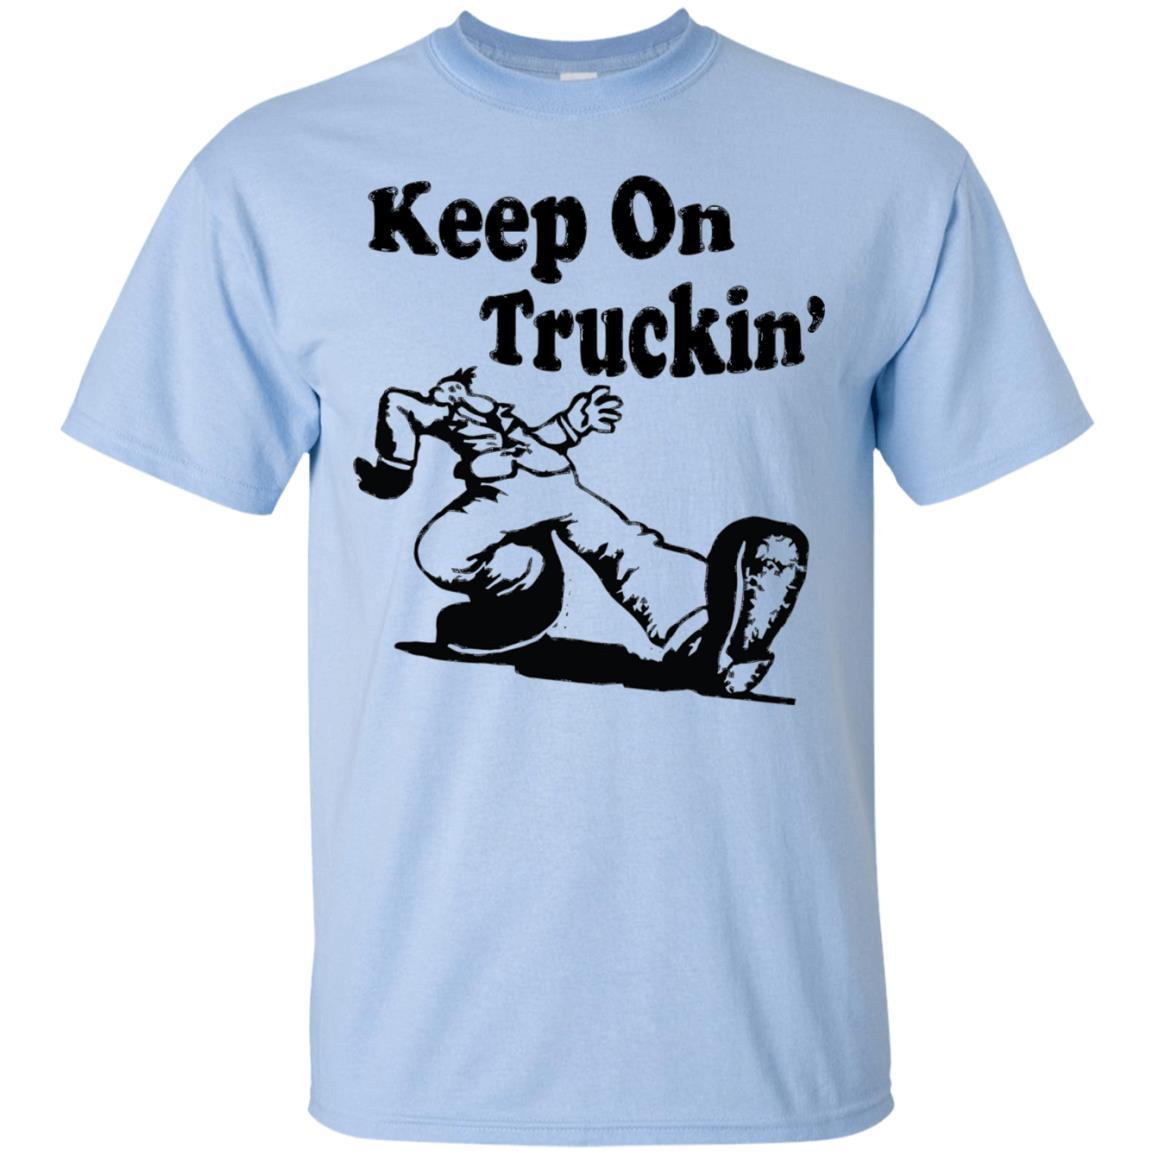 Iconic Keep On Truckin' Tshirt Light Blue / 5XL